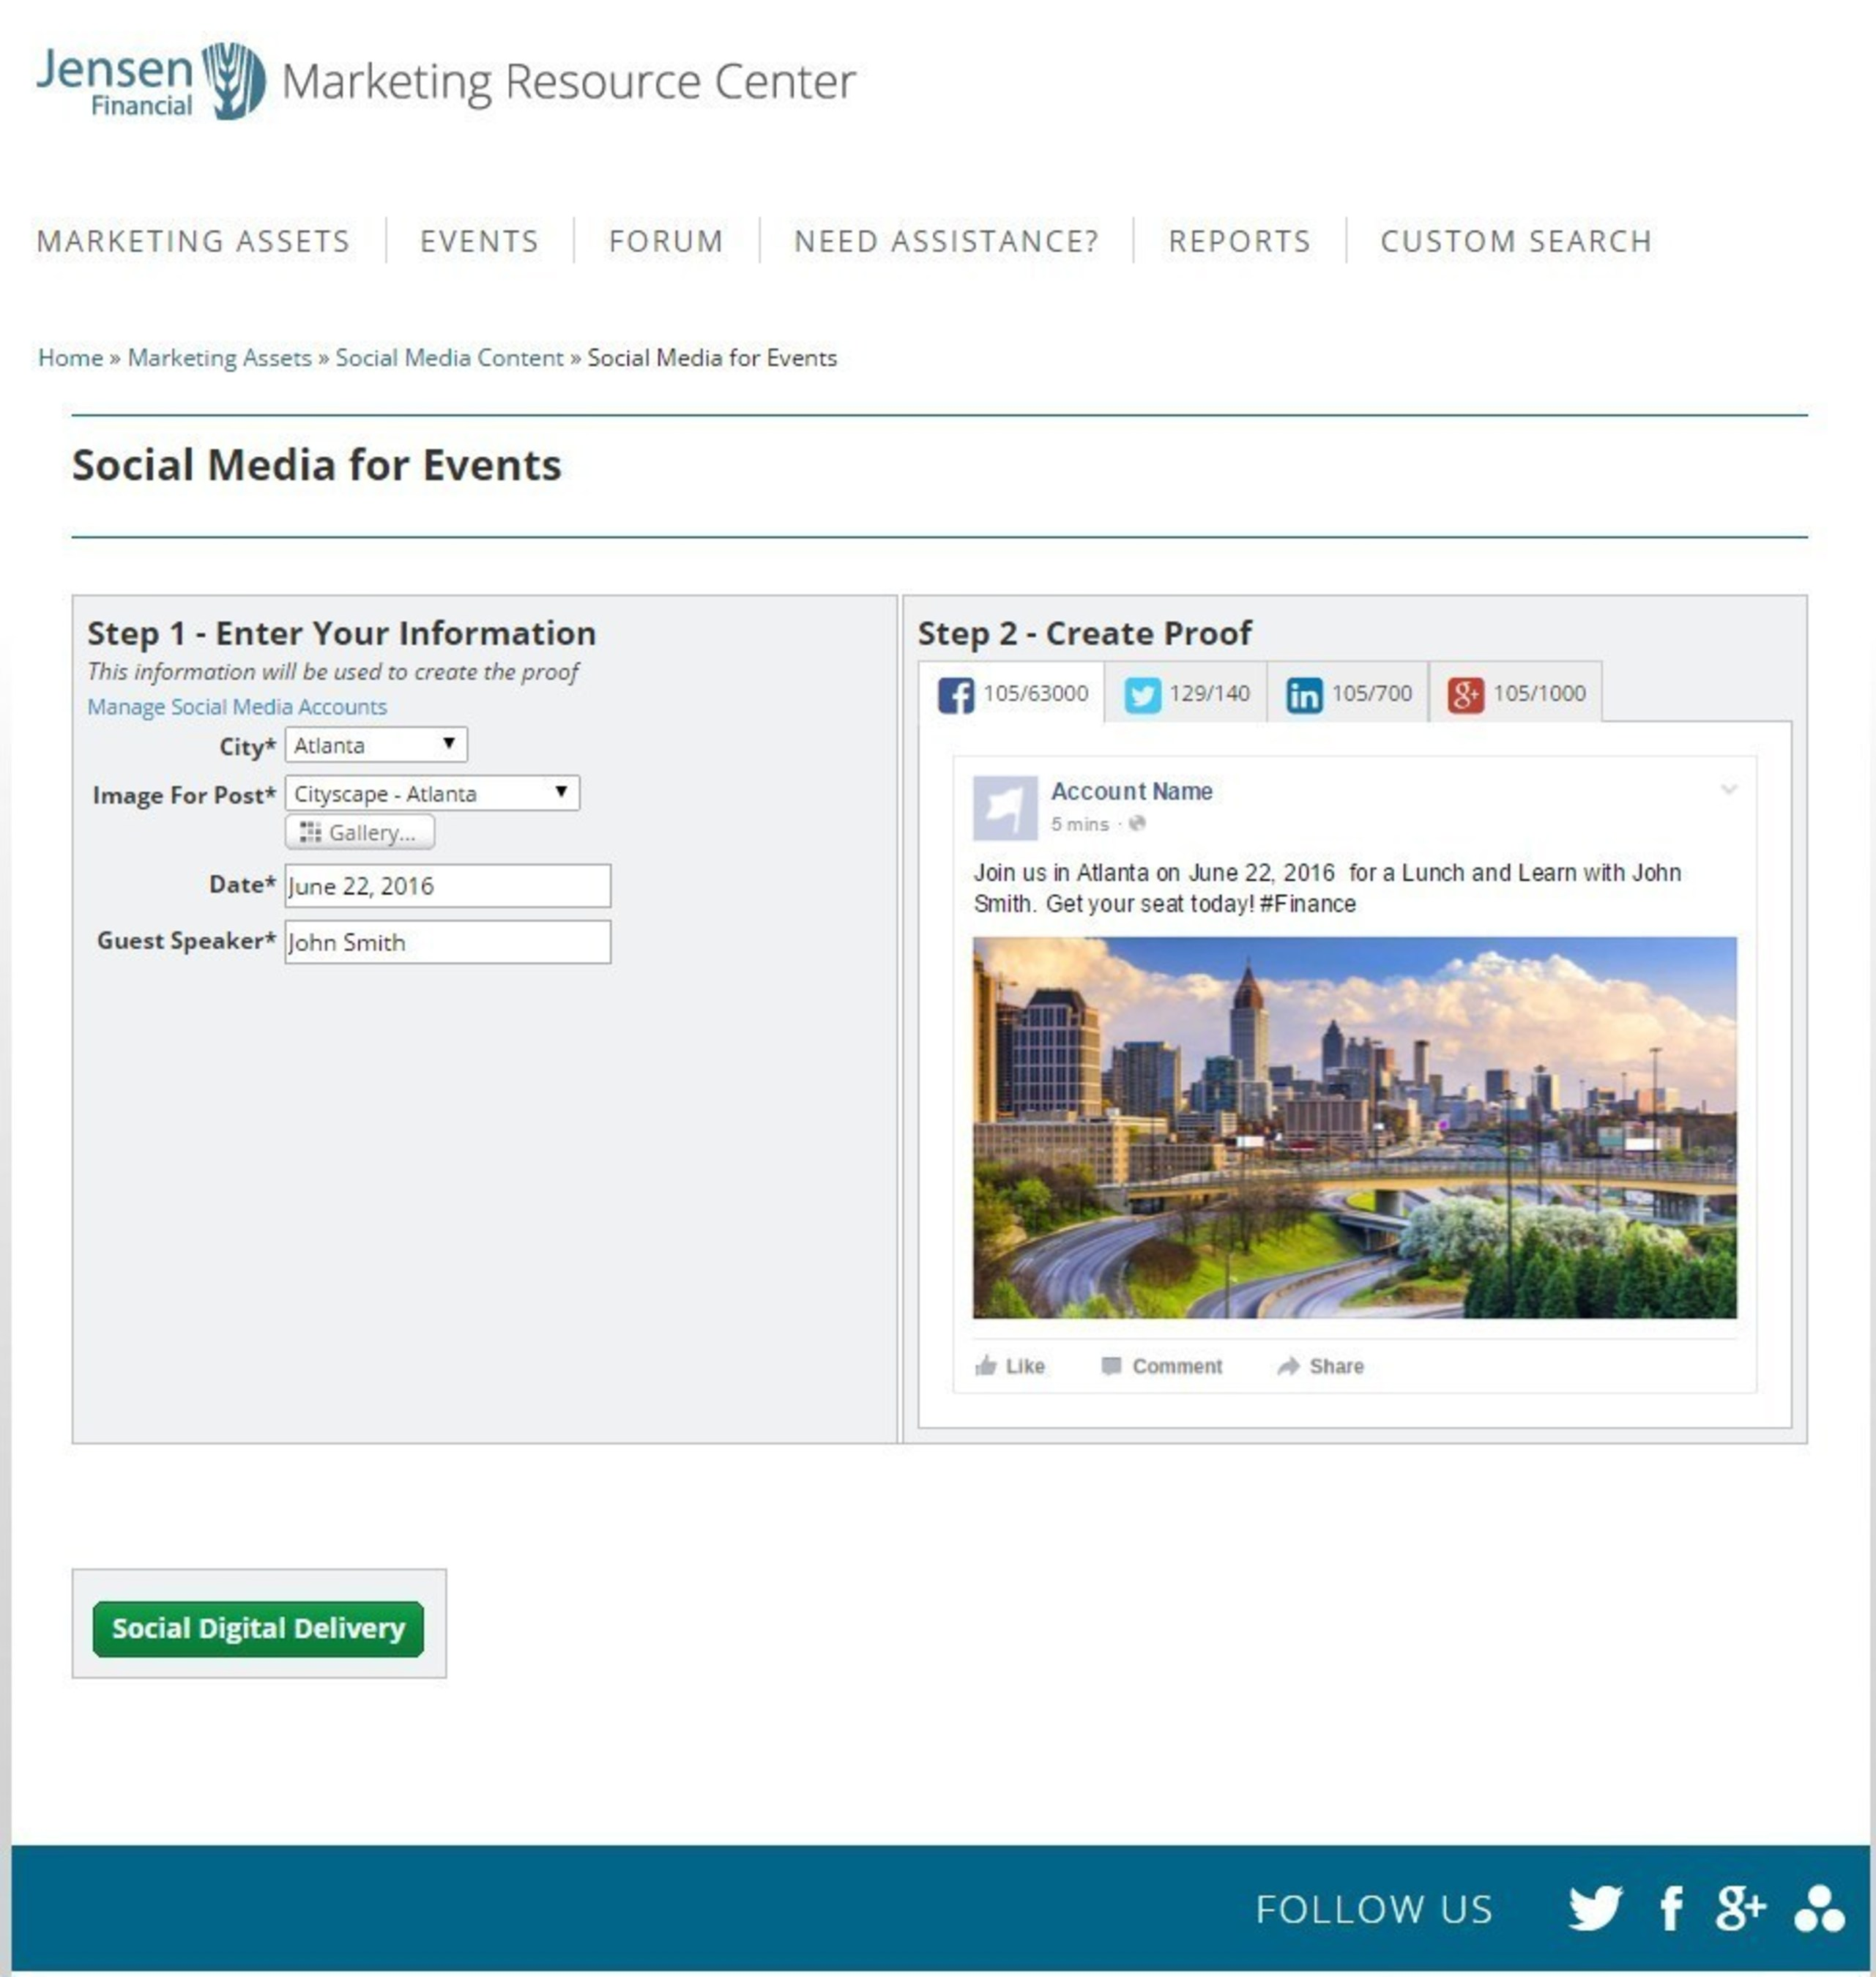 MarcomCentral social media capabilities provide controlled and customizable messaging to empower your employees.